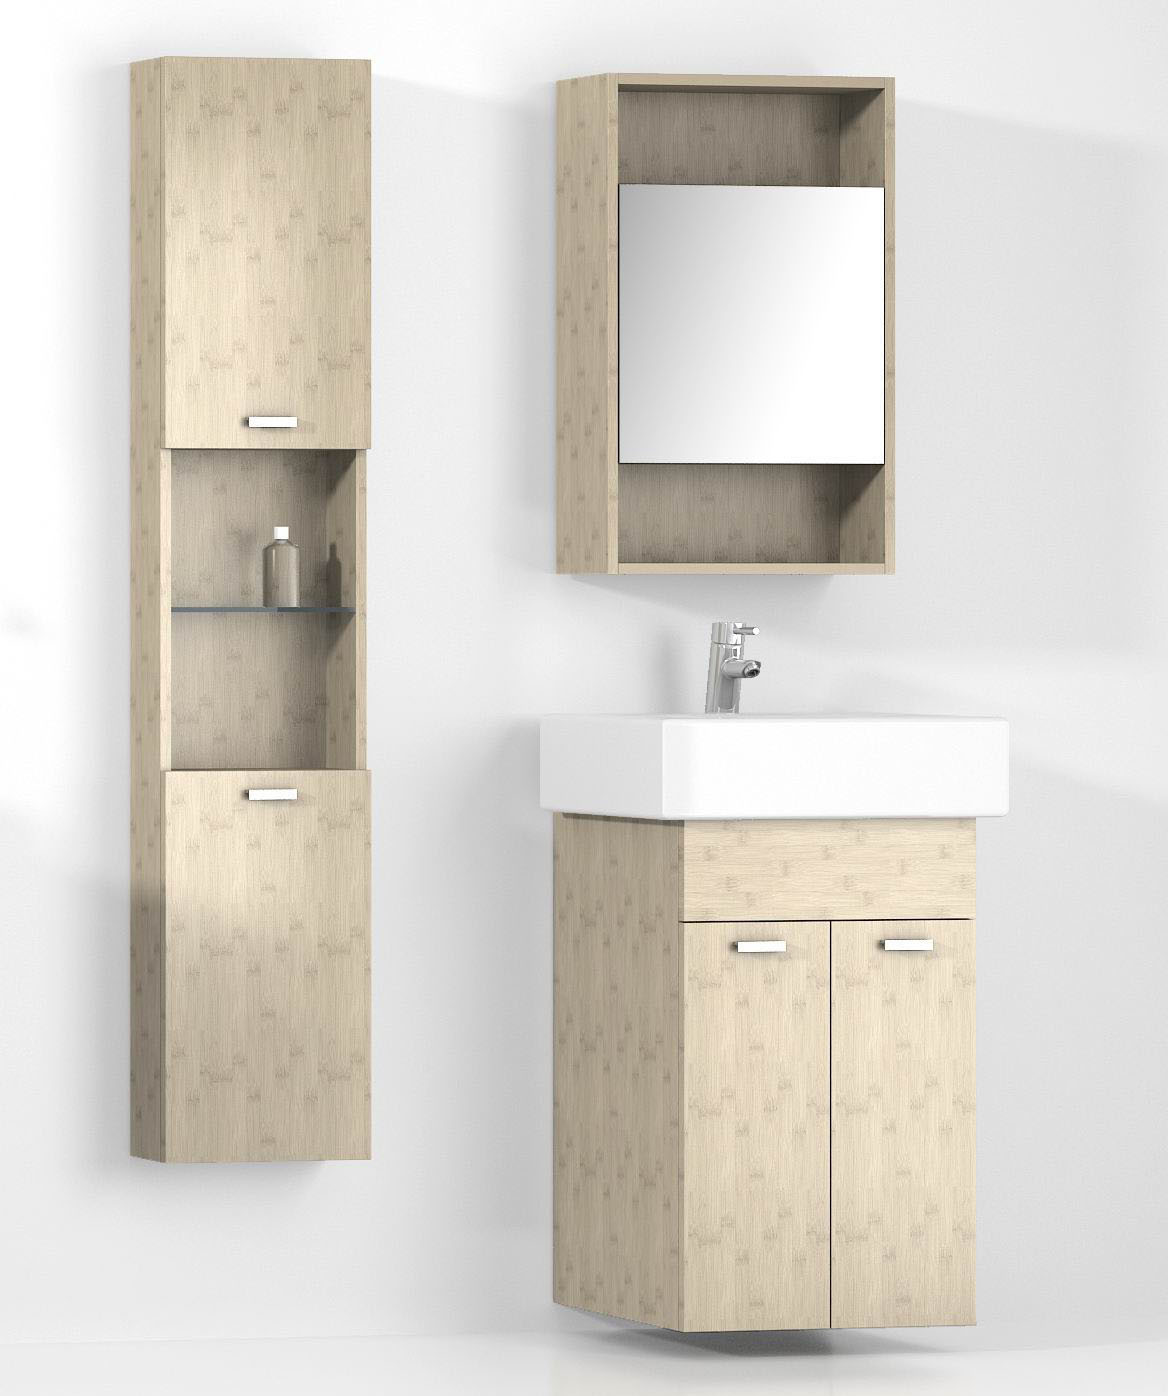 Best ideas about Bathroom Cabinet Storage . Save or Pin bamboo bathroom cabinet Now.